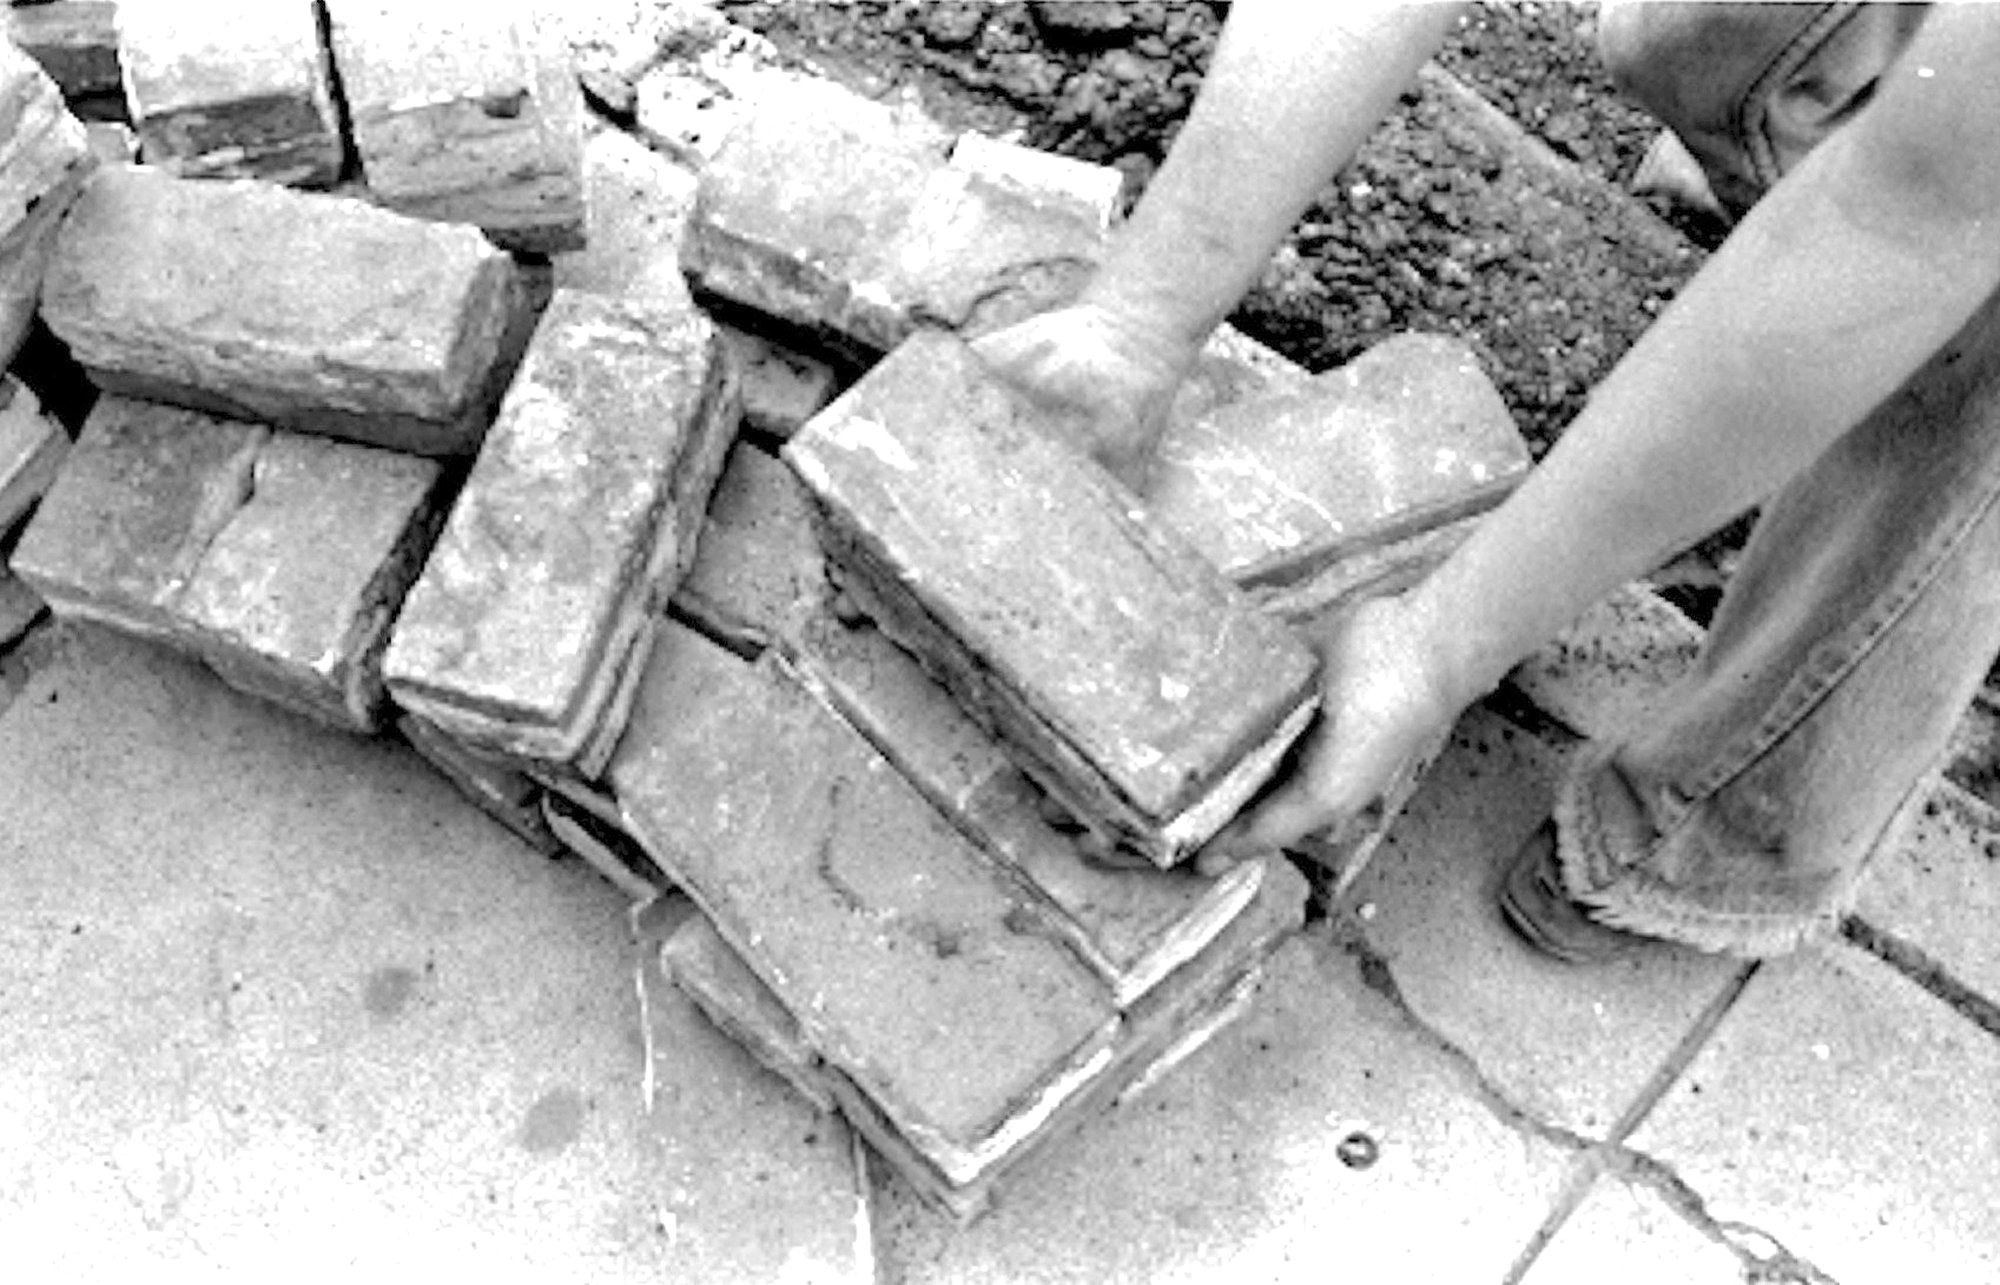 Brick pavers were used to pave downtown streets beginning in 1908.